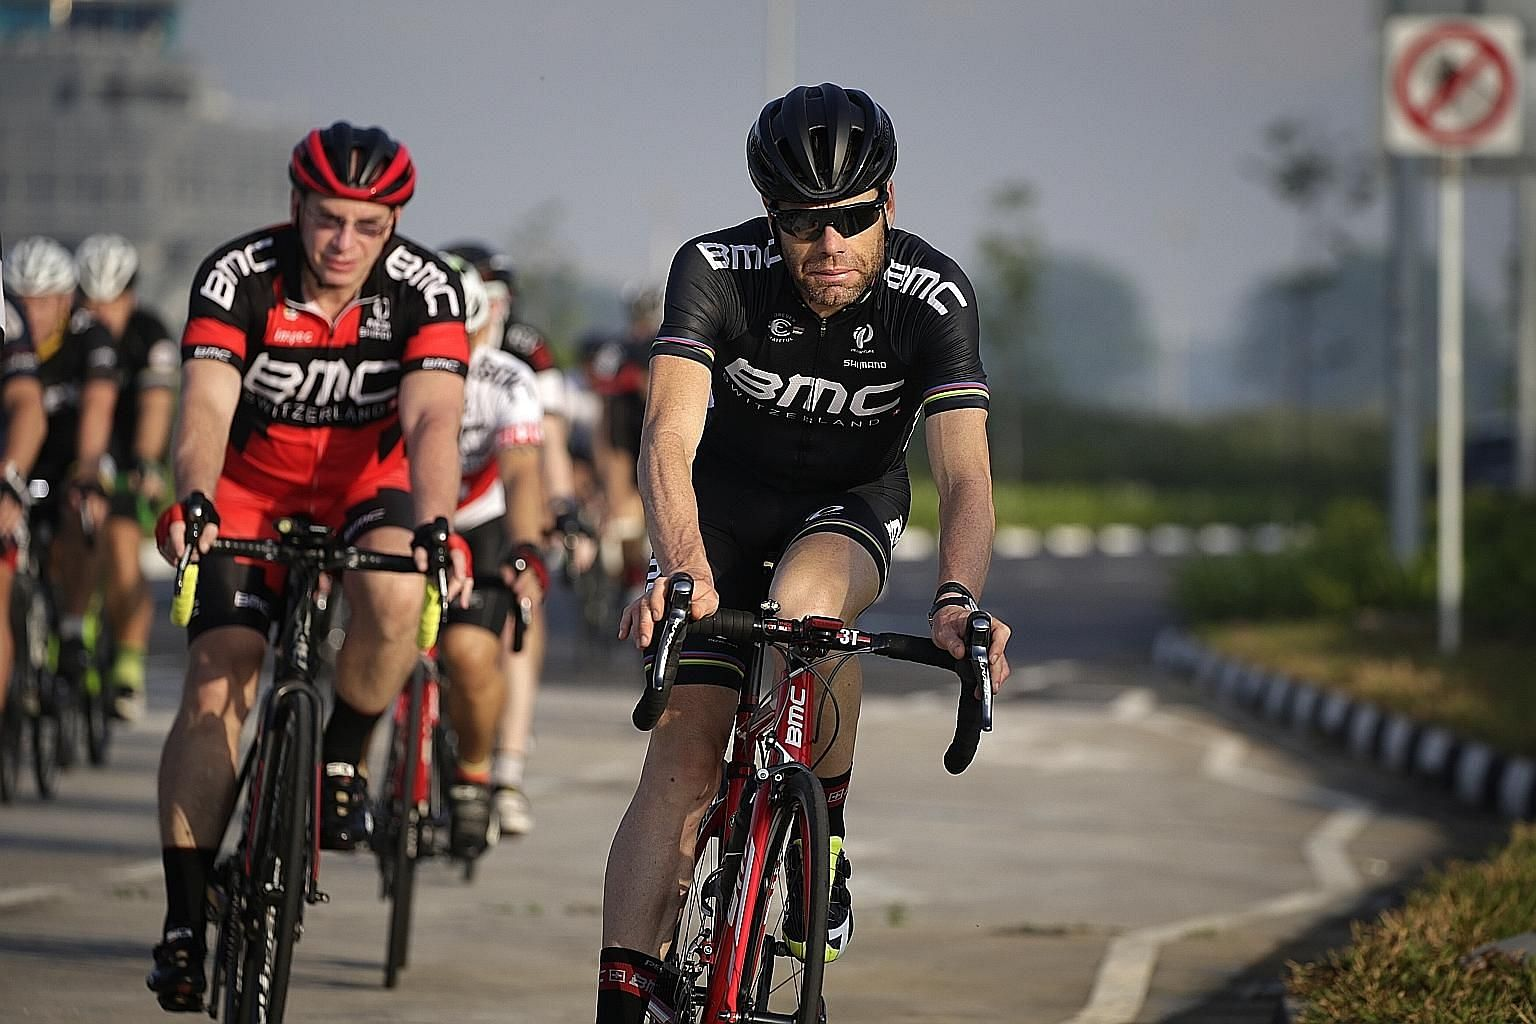 Former Tour de France winner Cadel Evans (in black), a global ambassador for the BMC racing team, followed by cyclists from the Singapore Cycling Federation at Seletar yesterday.